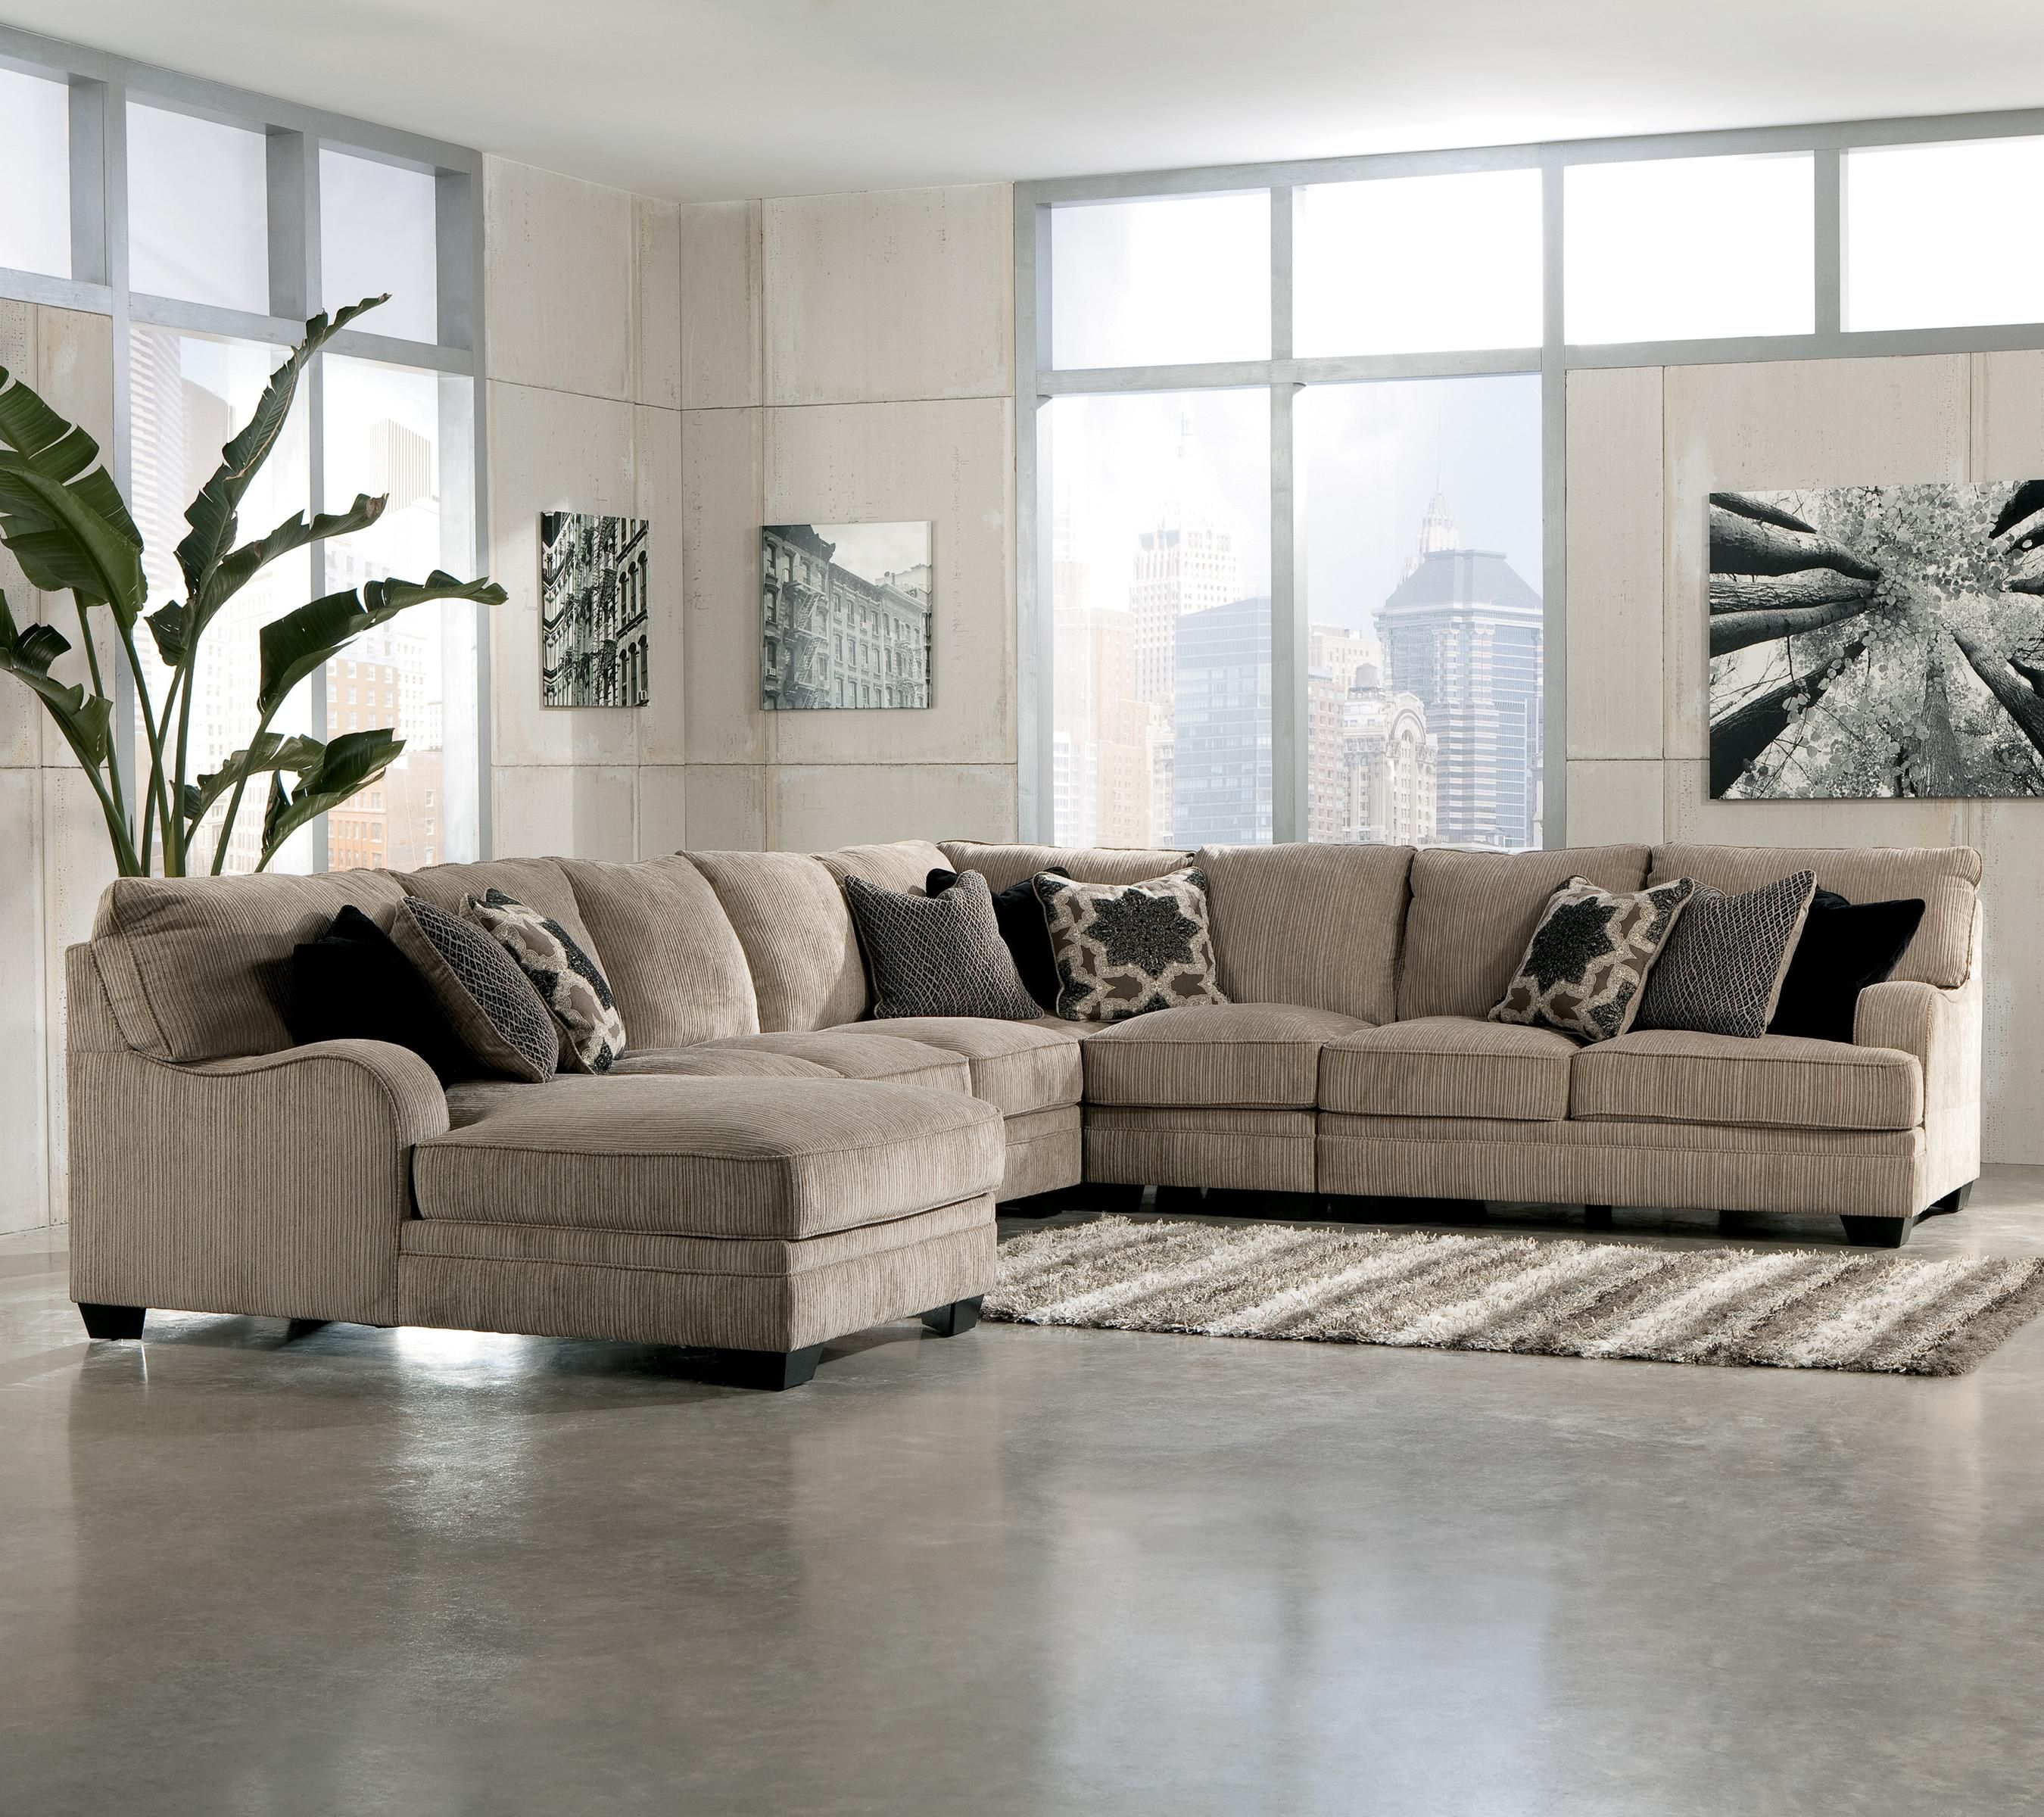 Living room Sectional Katisha 4-Piece Sectional by Ashley Furniture at Kensington Furniture. : ashley furniture small sectional - Sectionals, Sofas & Couches